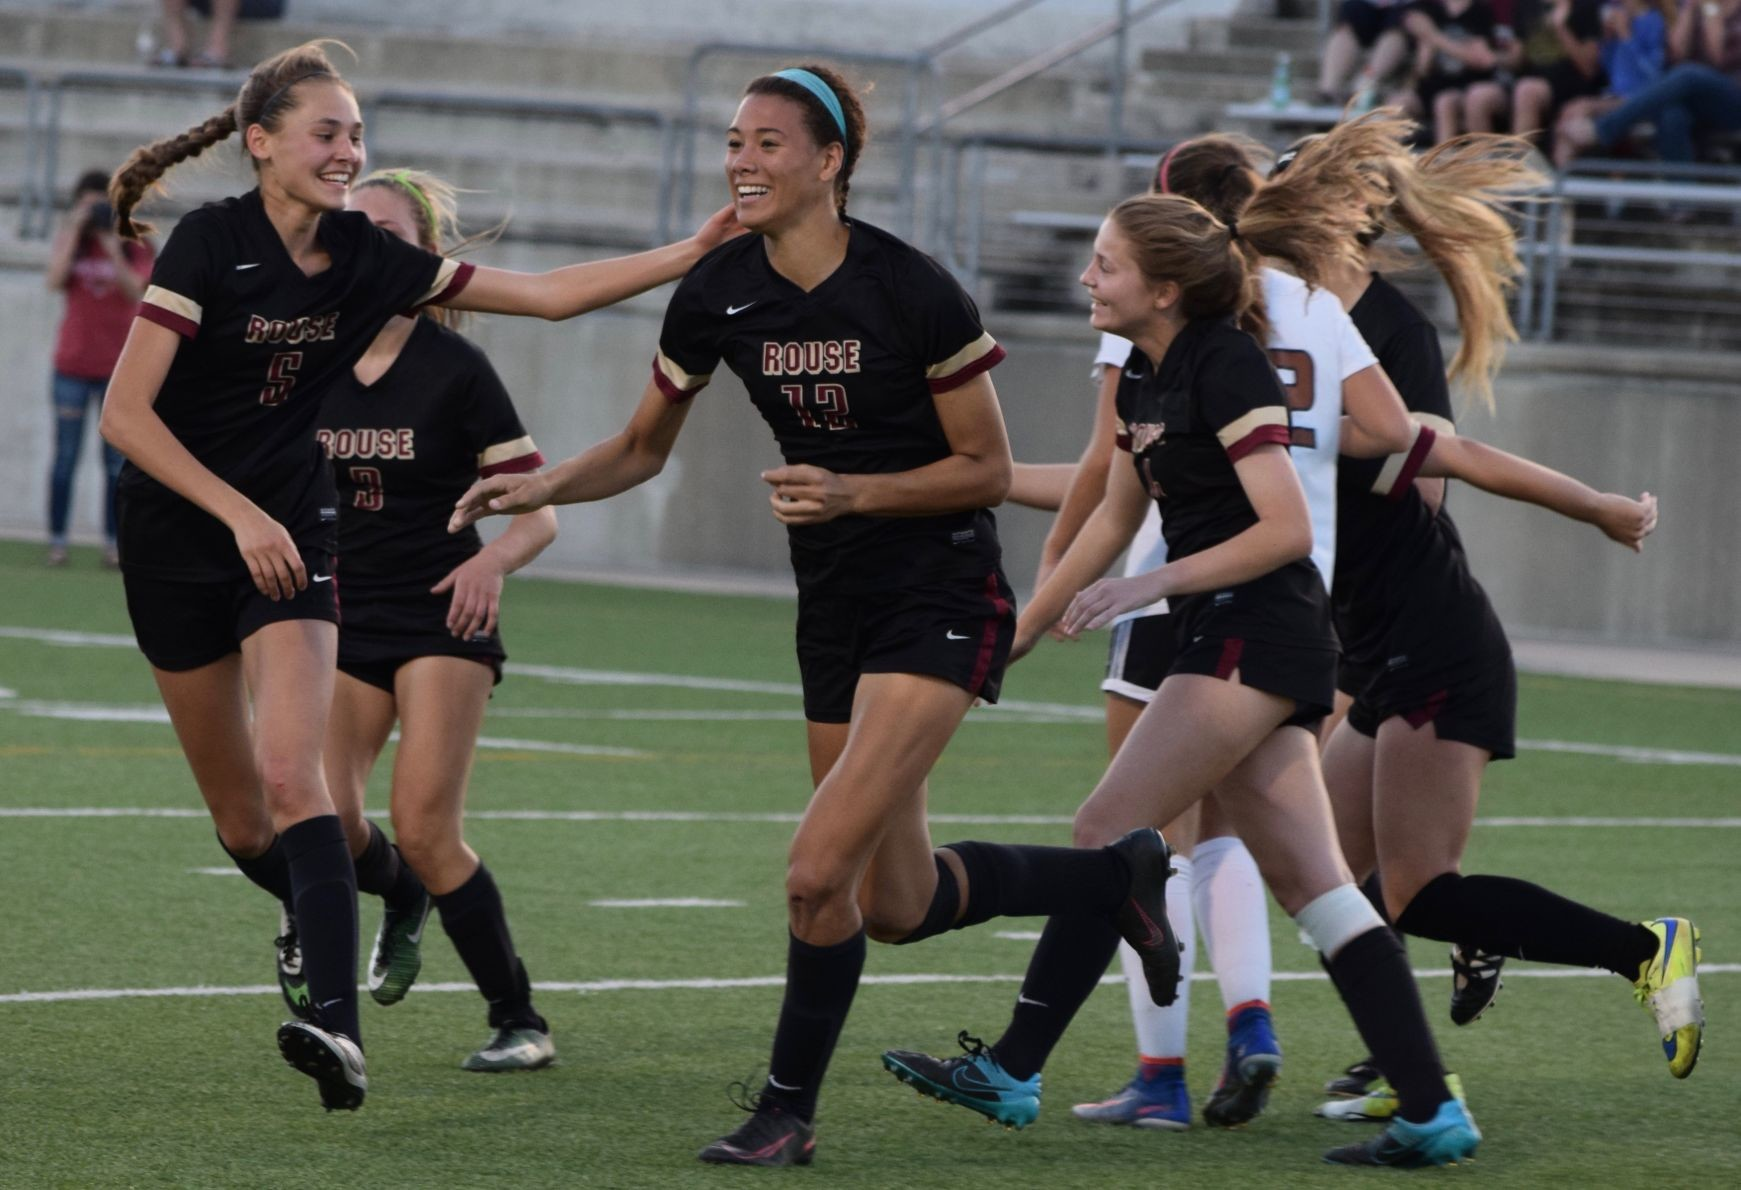 Haley Hoppe, center, scored two goals and the Rouse girls' soccer team beat Hutto 3-0 in the regional quarterfinals Tuesday night at Kelly Reeves Athletic Complex.